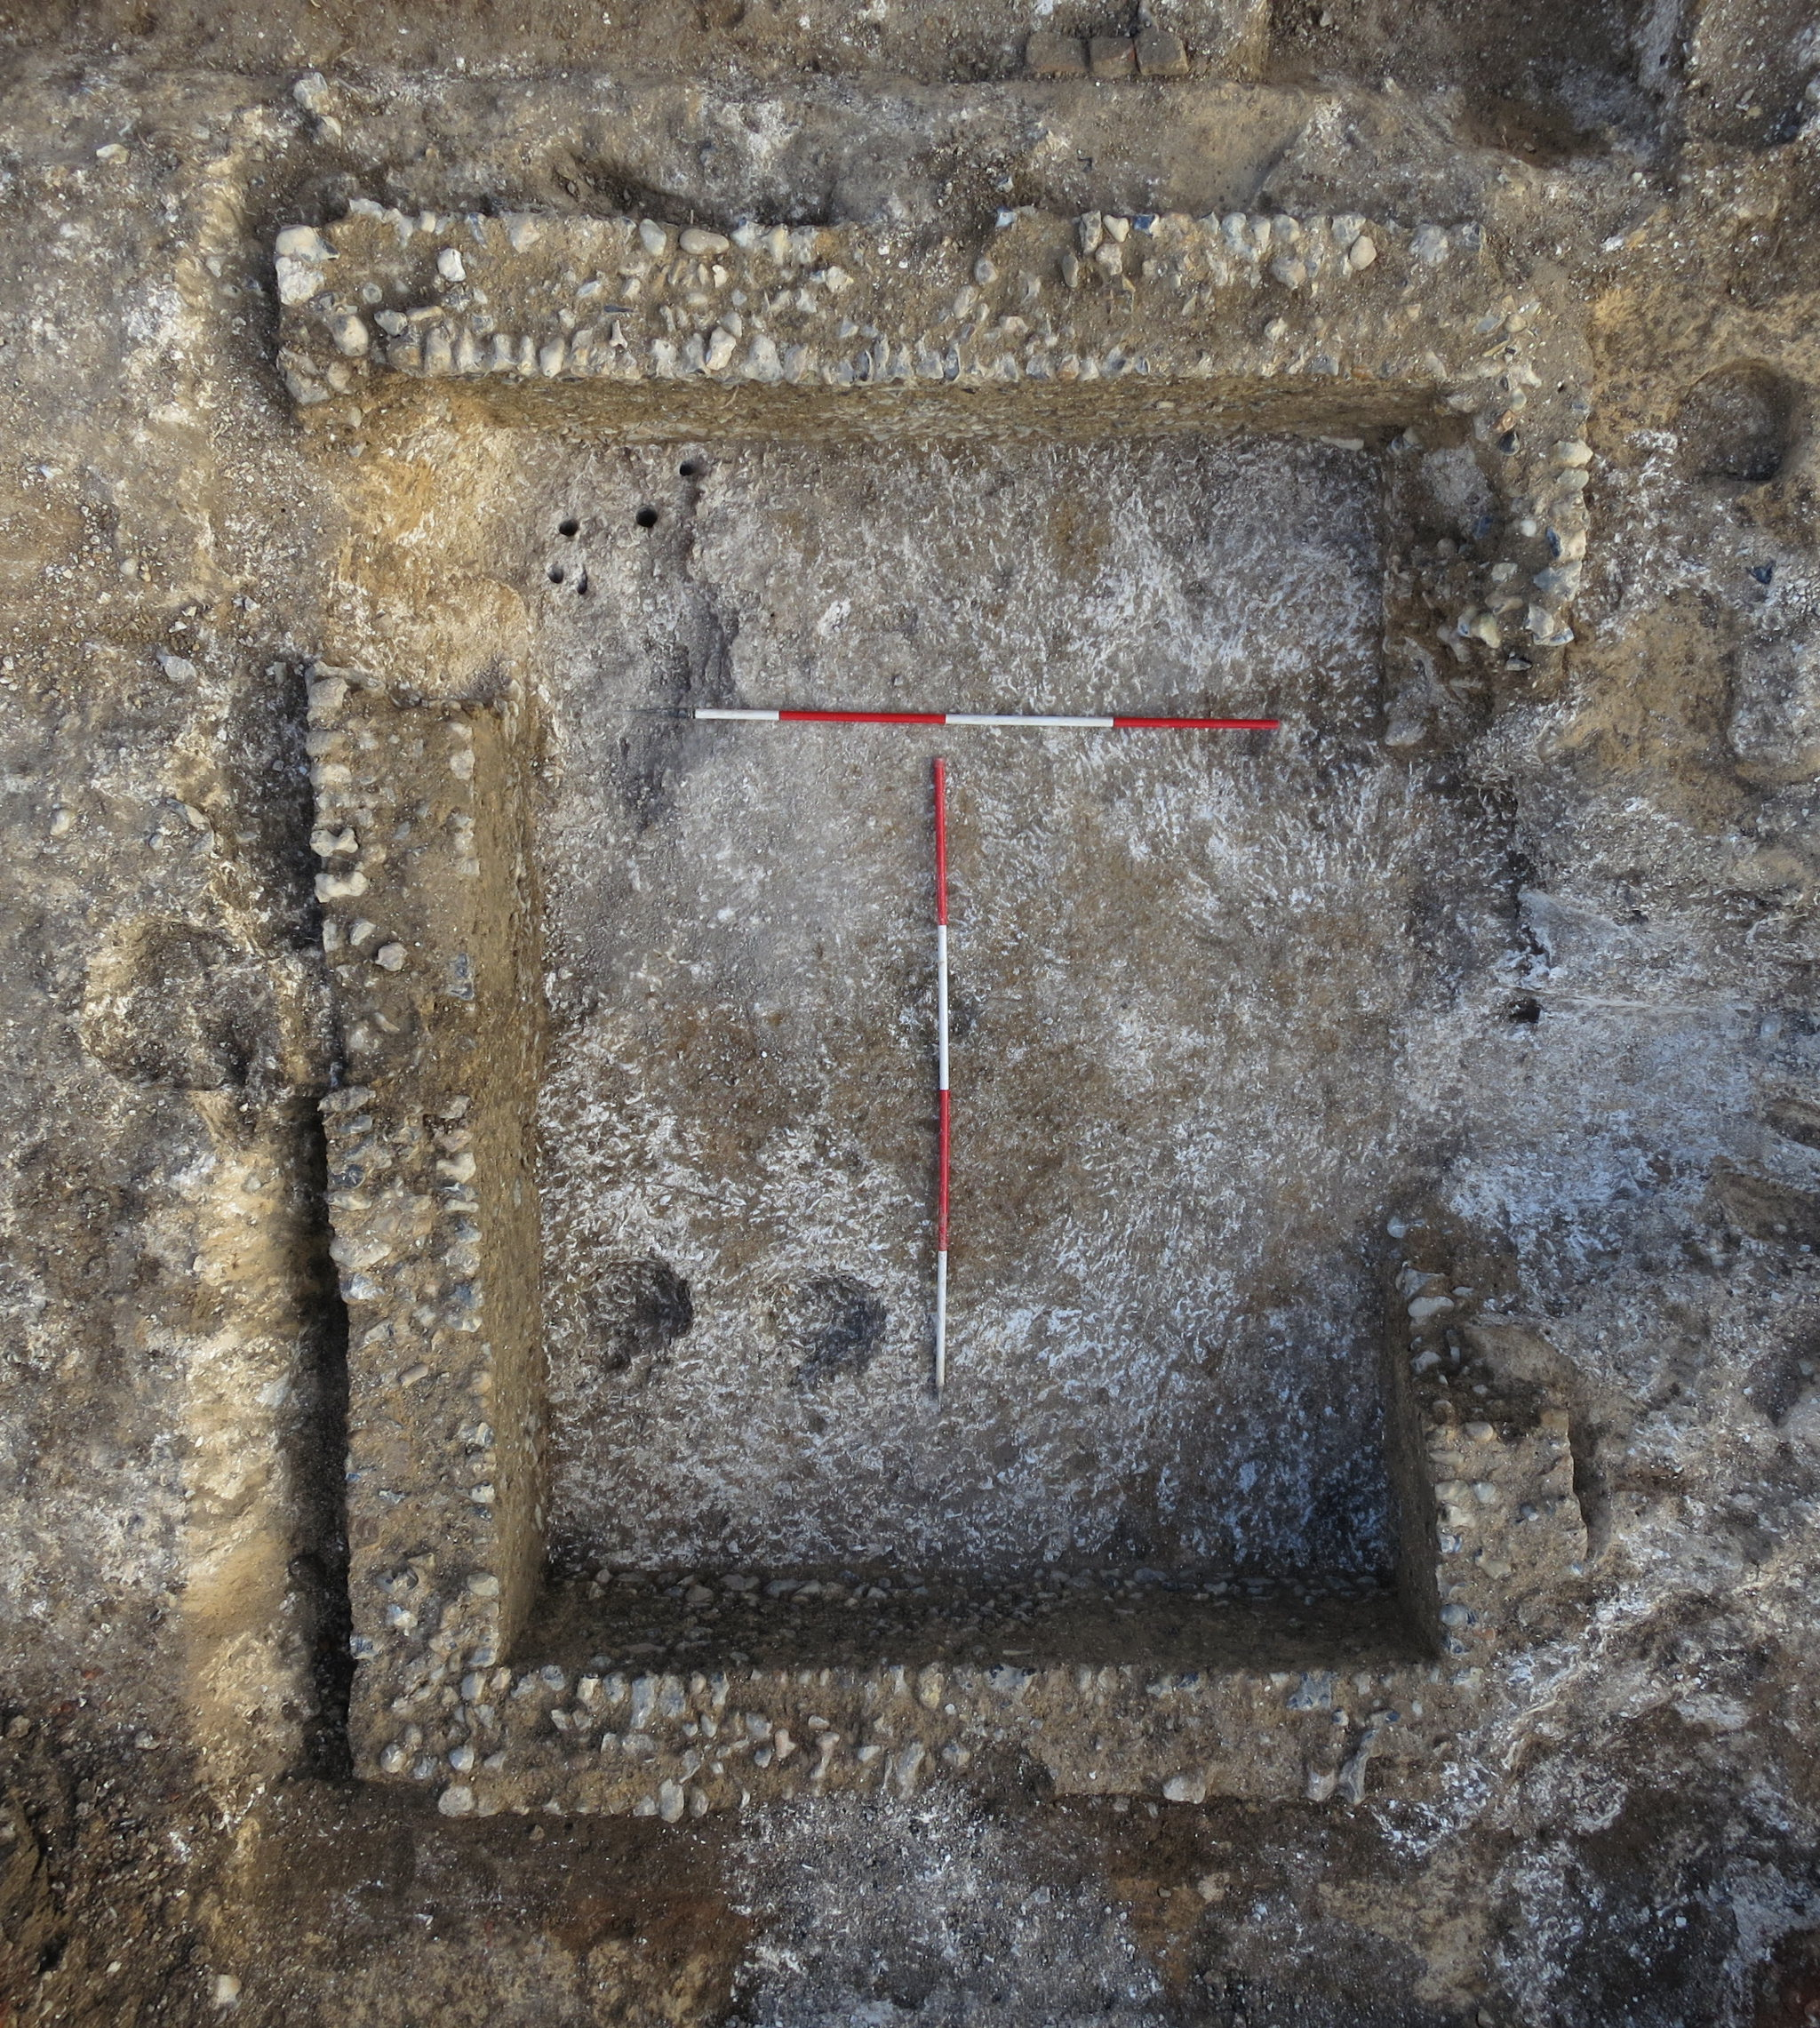 Medieval building foundations. The scale bars are two metres long.